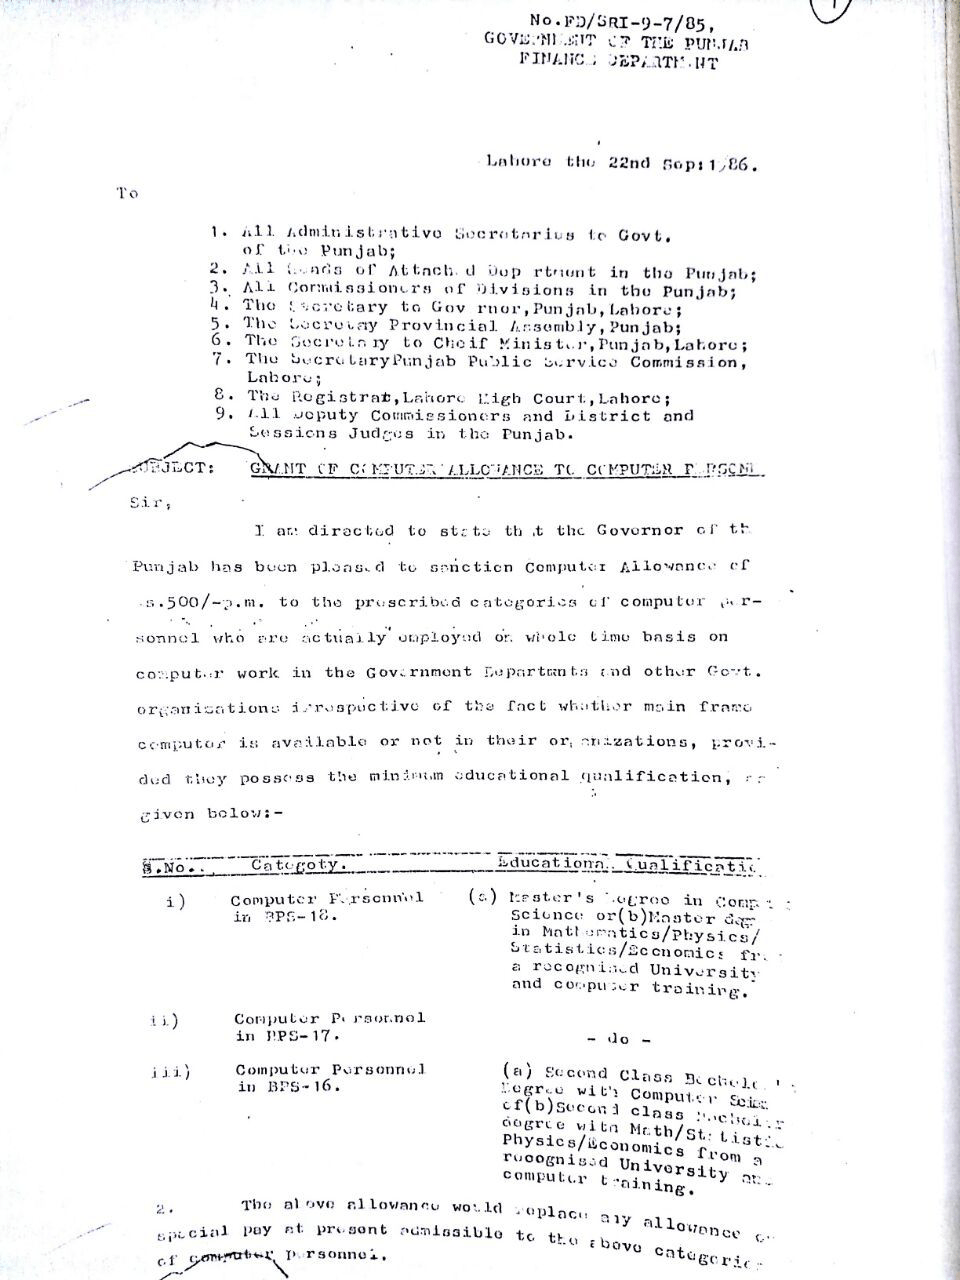 All Notifications Computer Allowance Punjab 1986 to Date